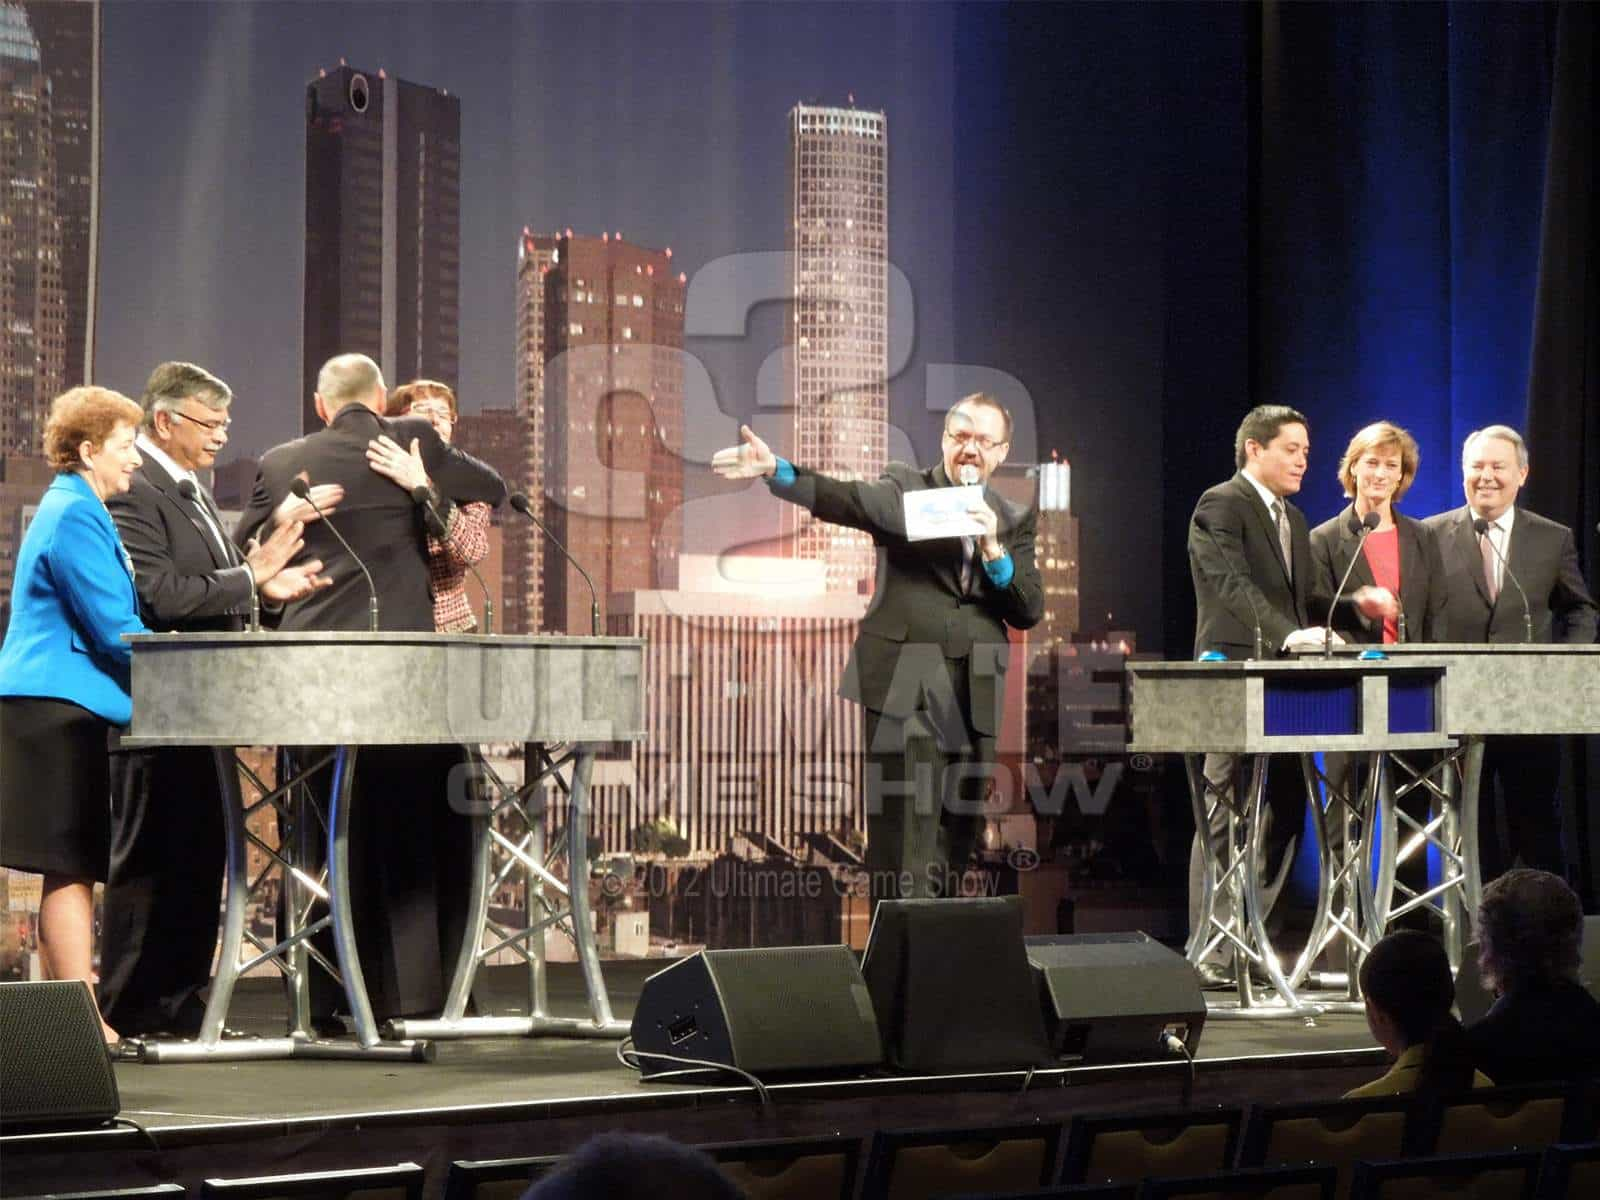 Ultimate Game Show presents a custom game show at an industry conference.